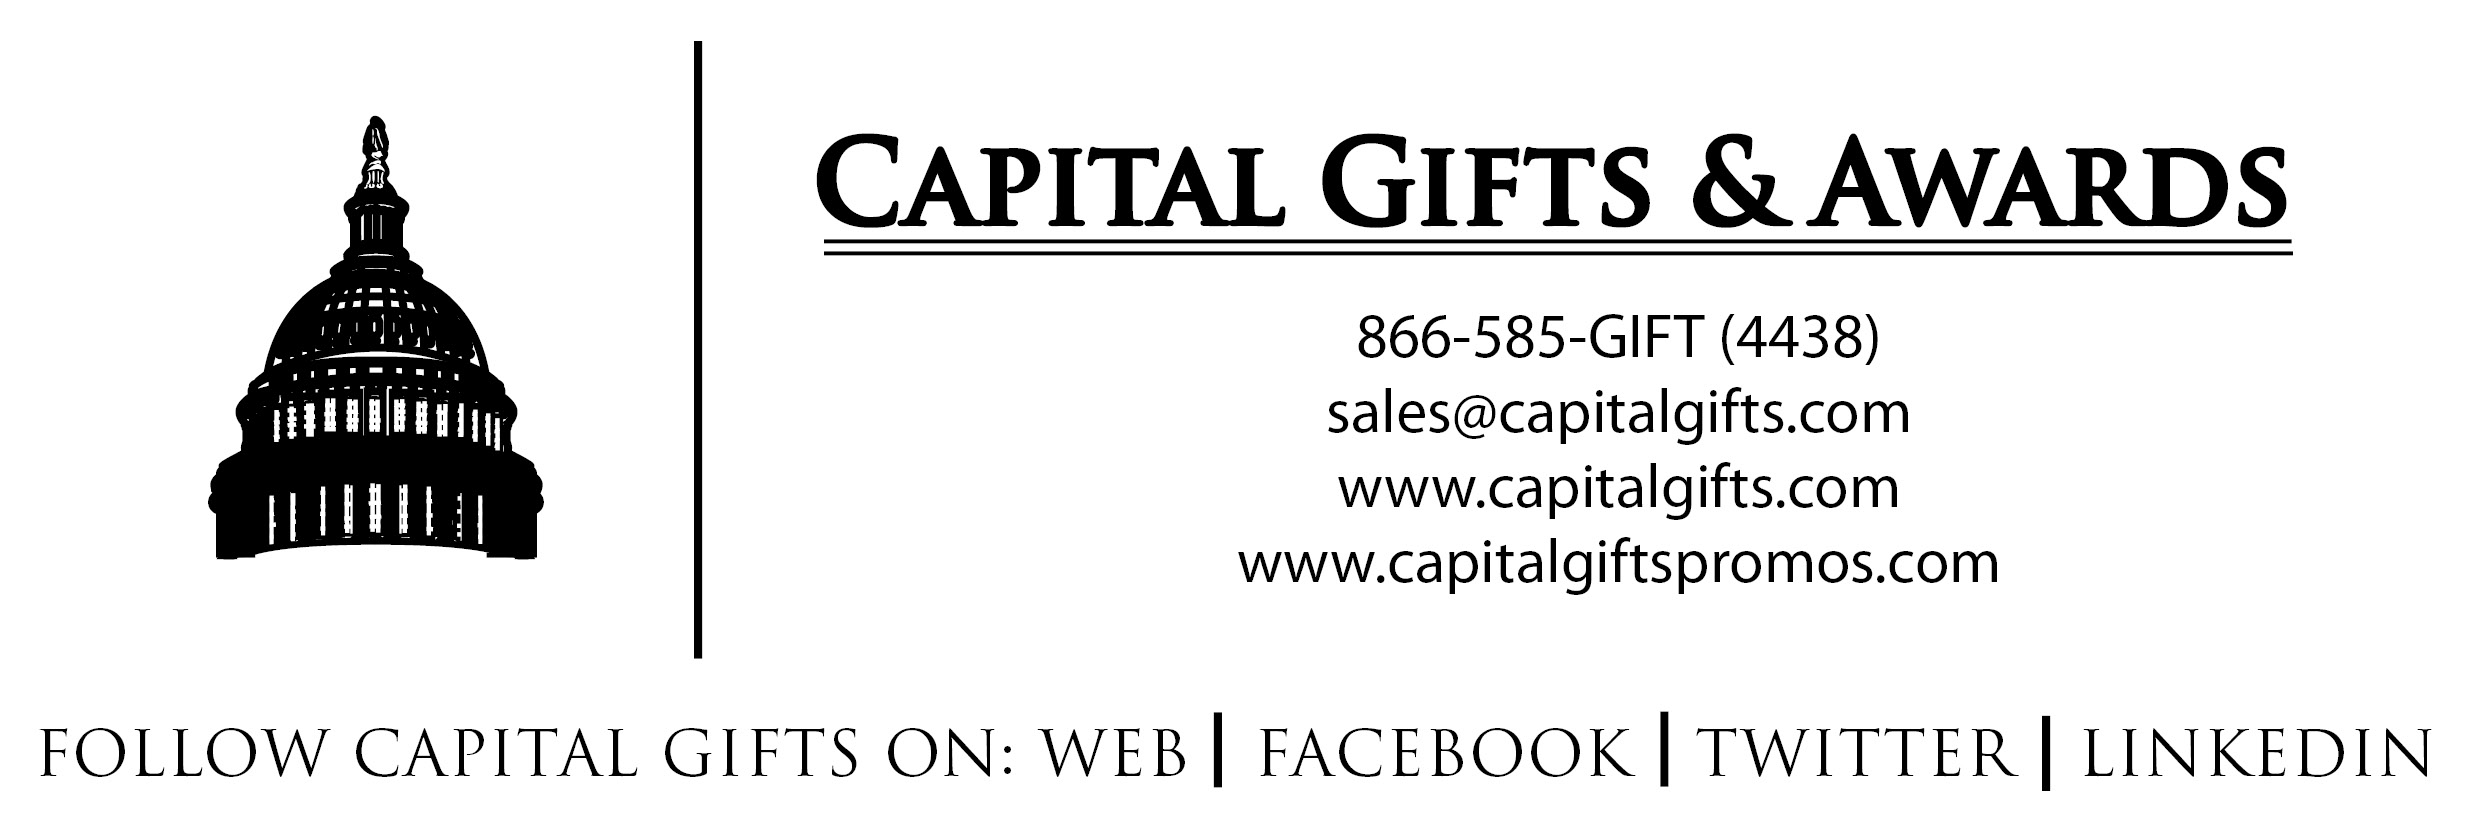 Welcome to  Capital Gifts and Awards , your premiere business gift, award, promotional product and corporate apparel company. We are renowned for our unusual gifts, stunning awards and creative presentation; as well as exemplary attention to customer service.  We are founded on over 20 years of experience in enhancing and complementing the business objectives of our clients throughout the world with a wide range of products, brand name merchandise and creative design. We exist to meet your needs, when you want, how you want and within your budget